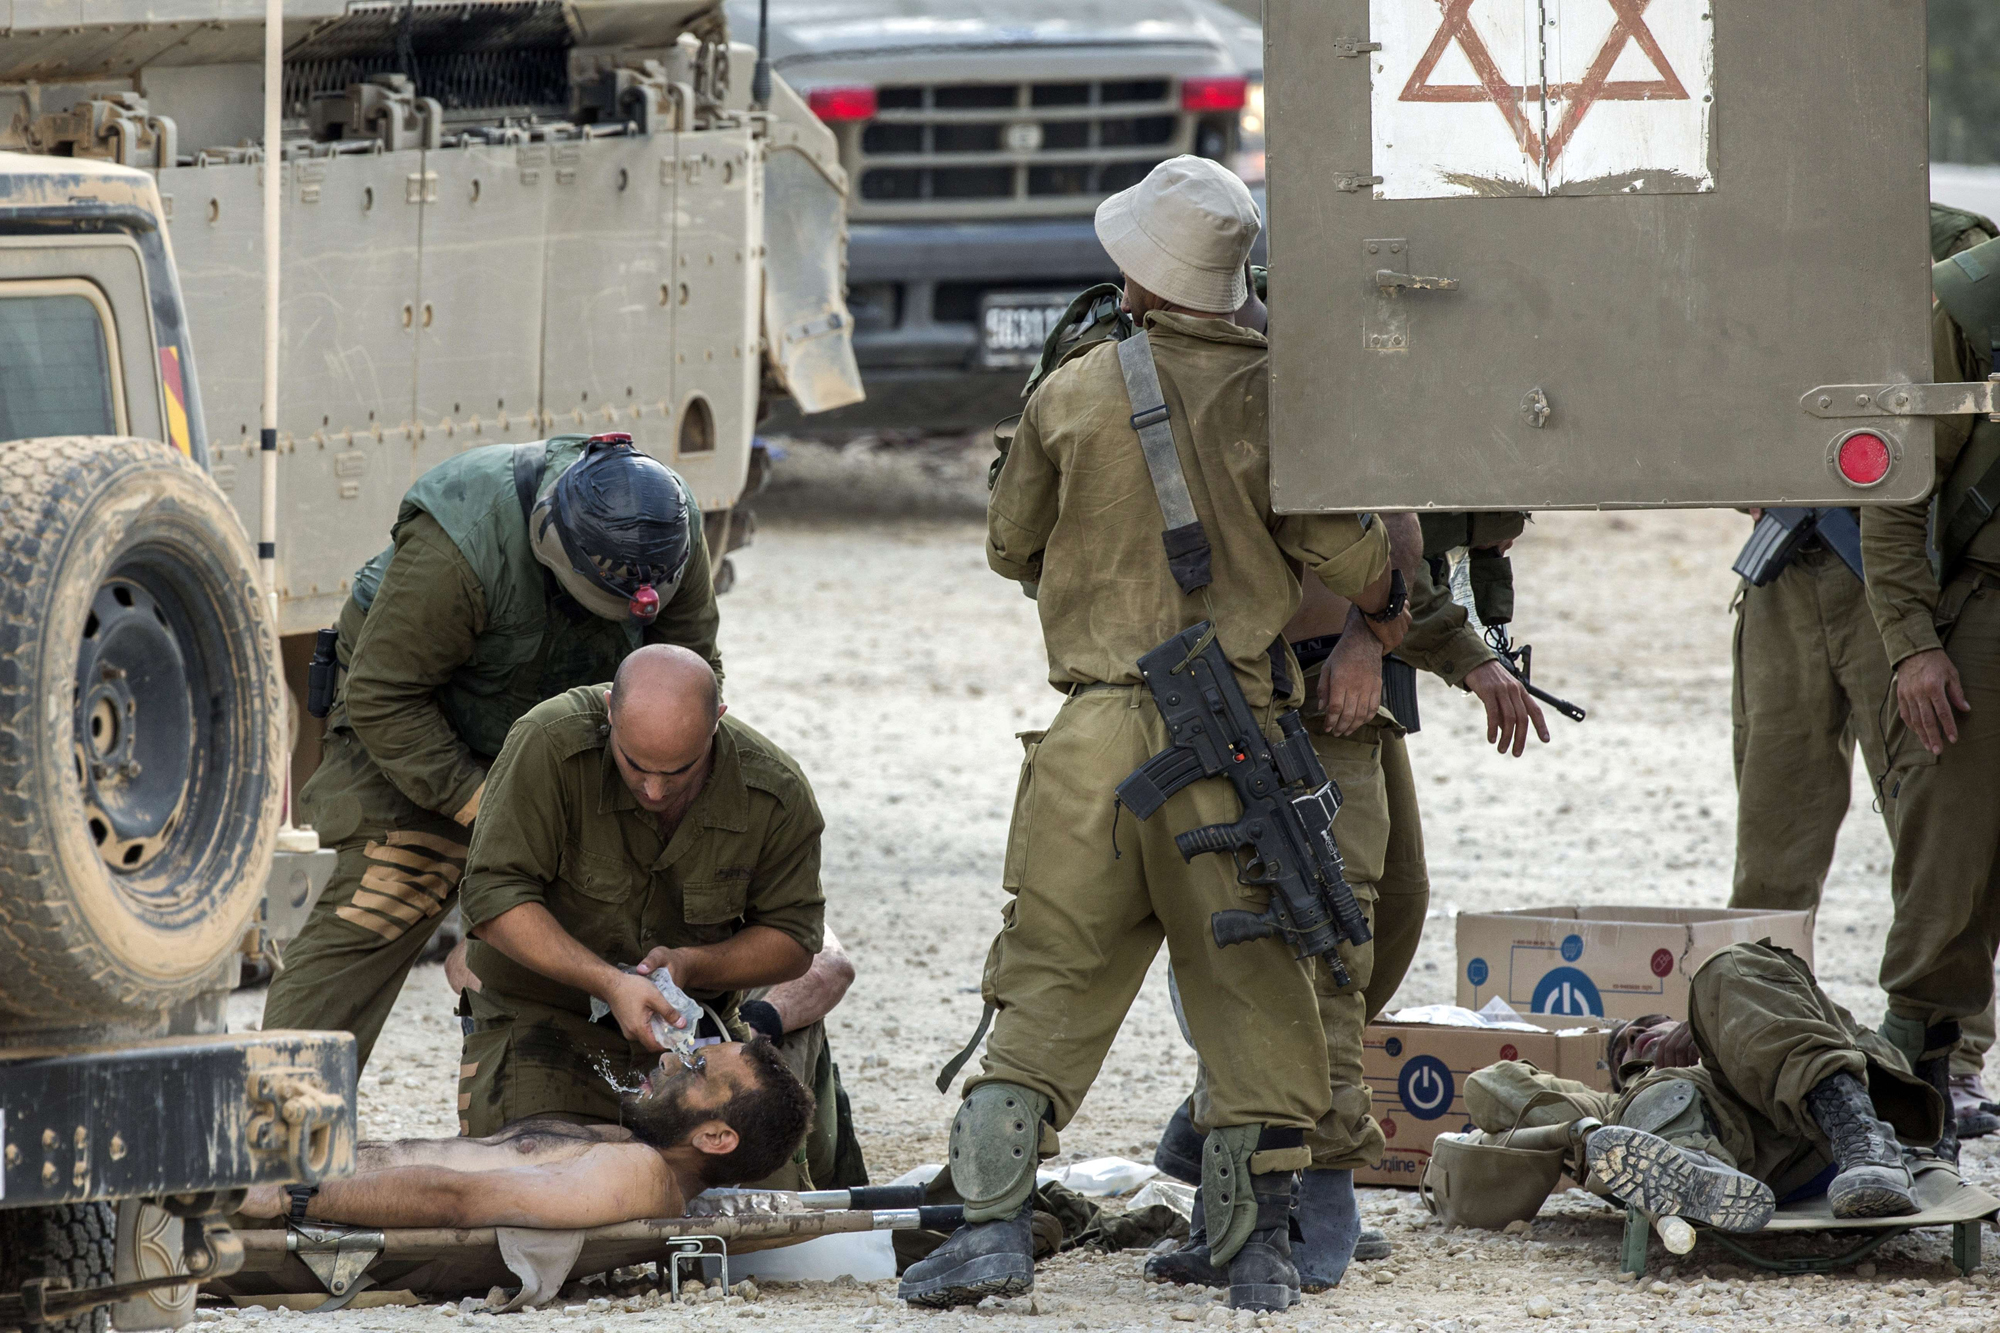 Israeli soldiers evacuate their wounded comrades at an army deployment area near Israel's border with the Gaza Strip, on July 20, 2014.